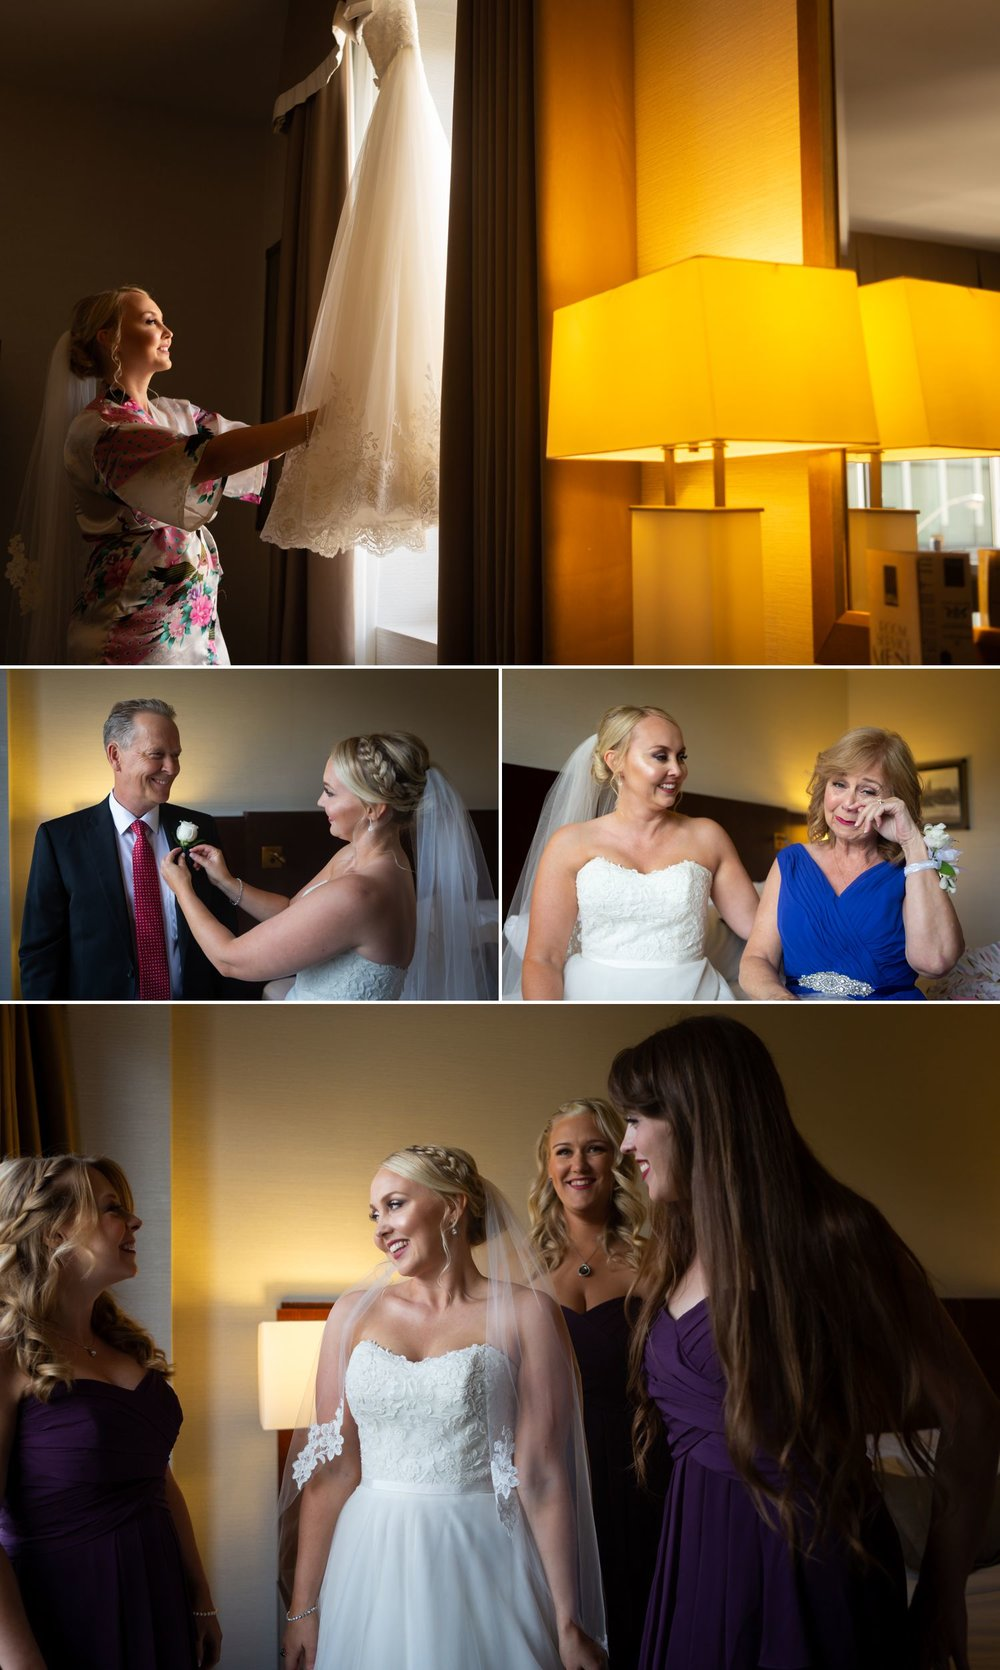 The bride getting ready with her friends and family at a hotel in downtown Ottawa